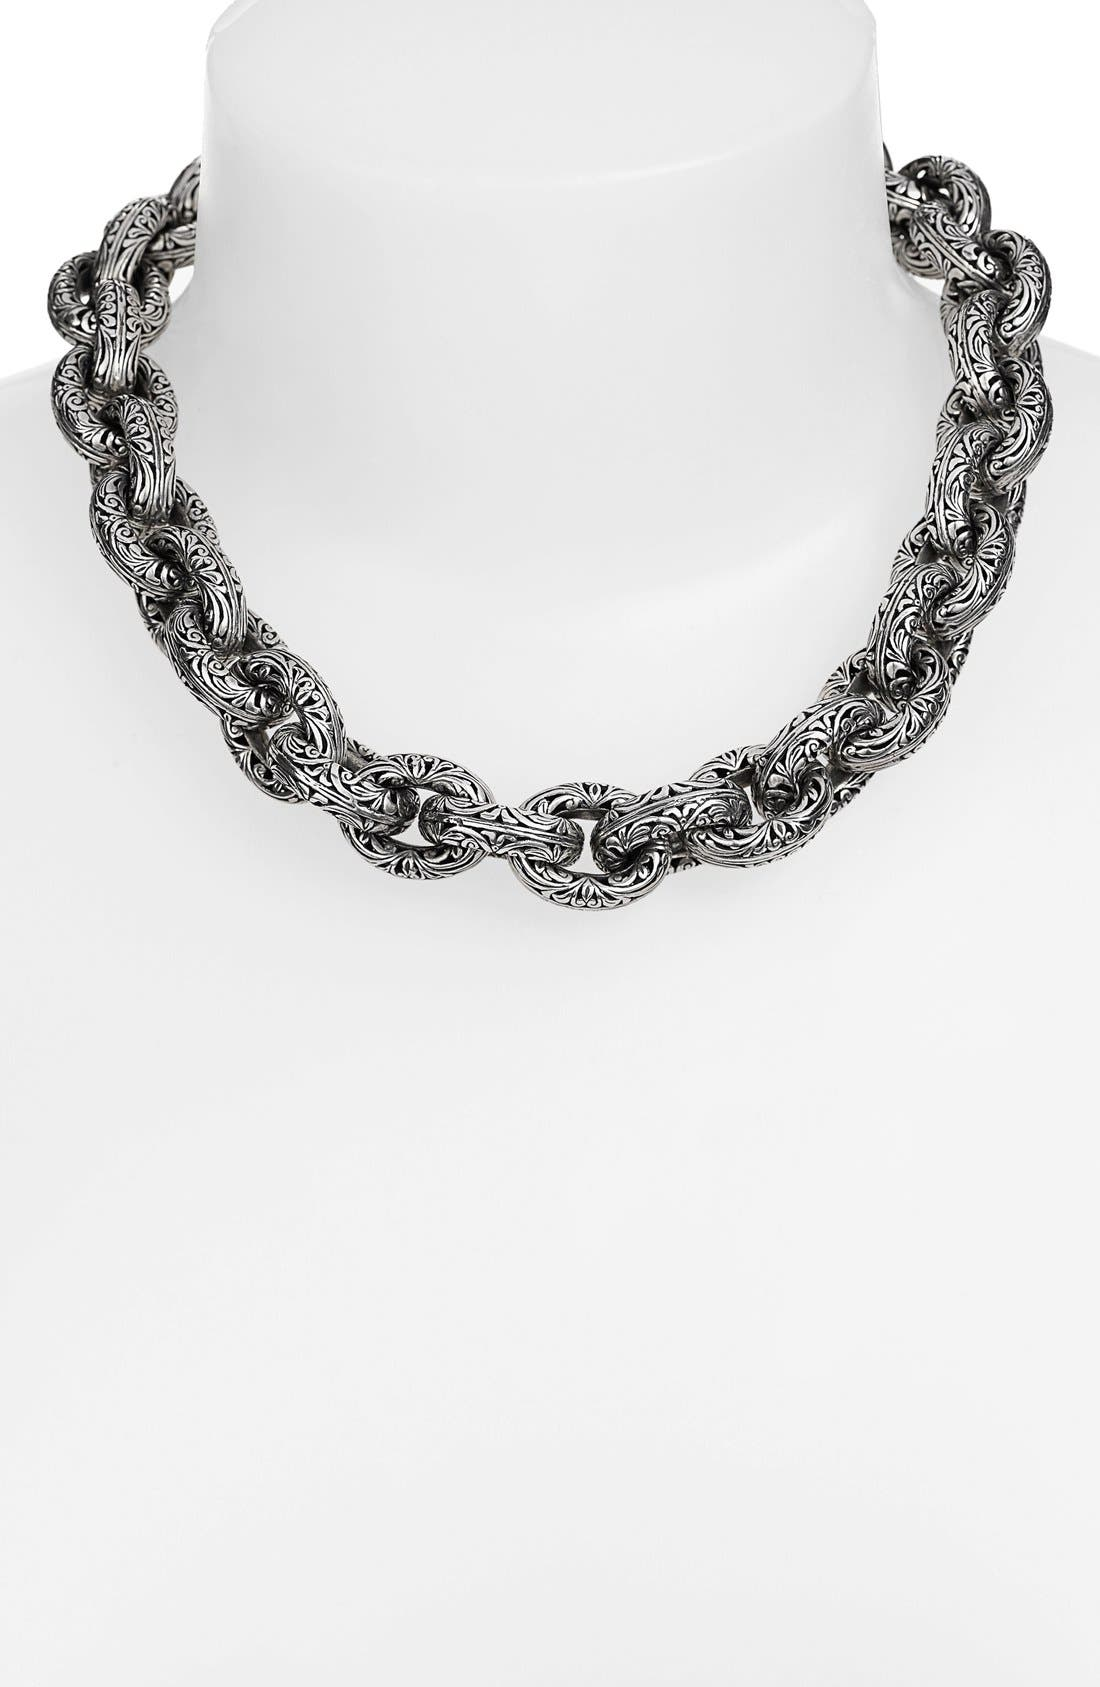 Konstantino 'Classics' Link Collar Necklace